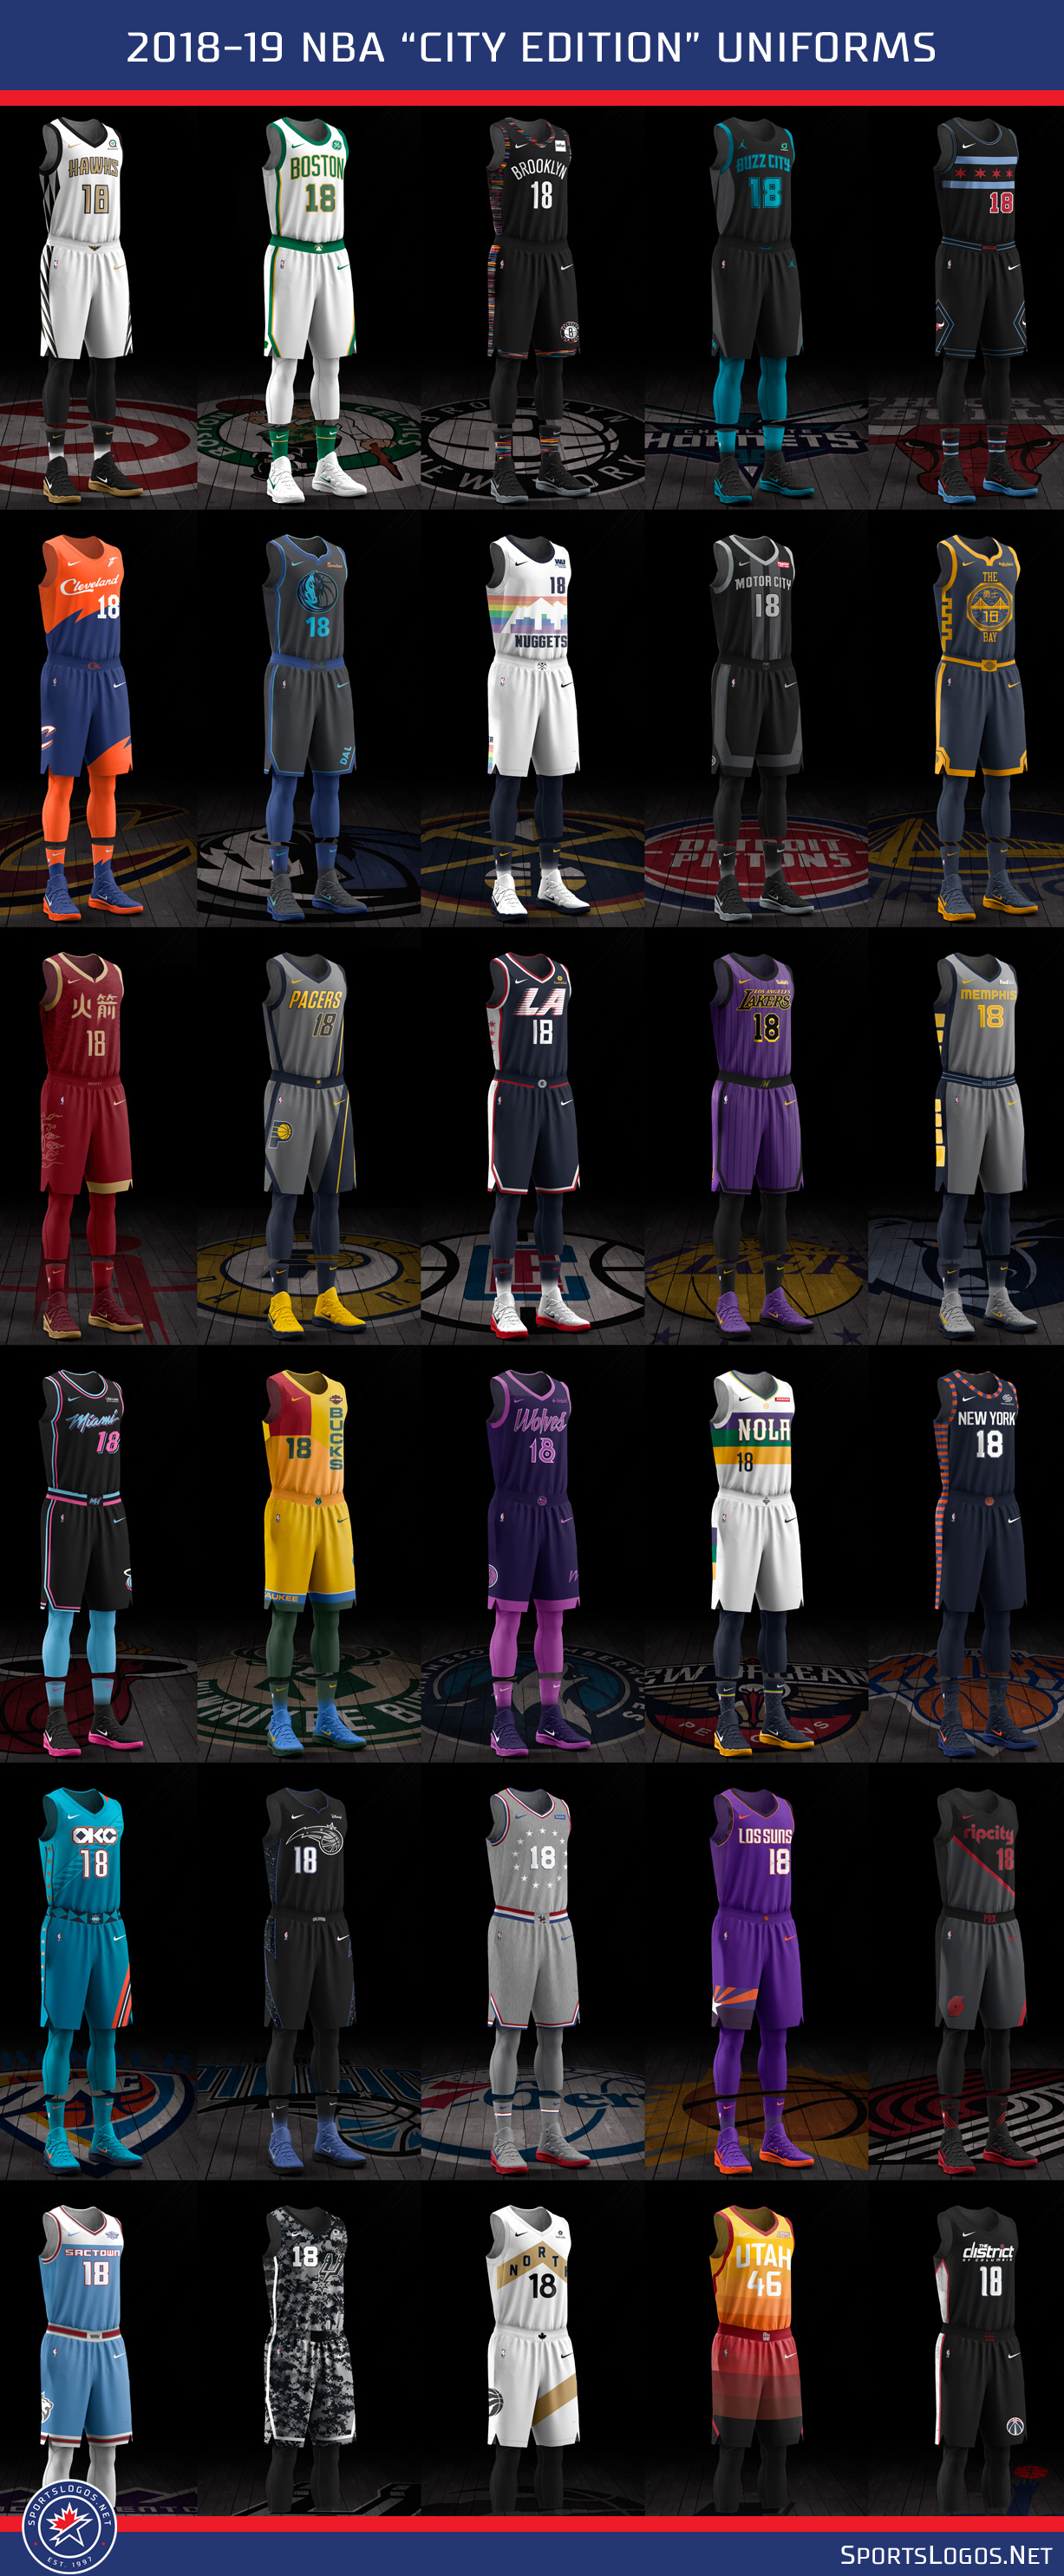 16093ad015c 2018-19 NBA City Uniforms Tracker | Chris Creamer's SportsLogos.Net ...